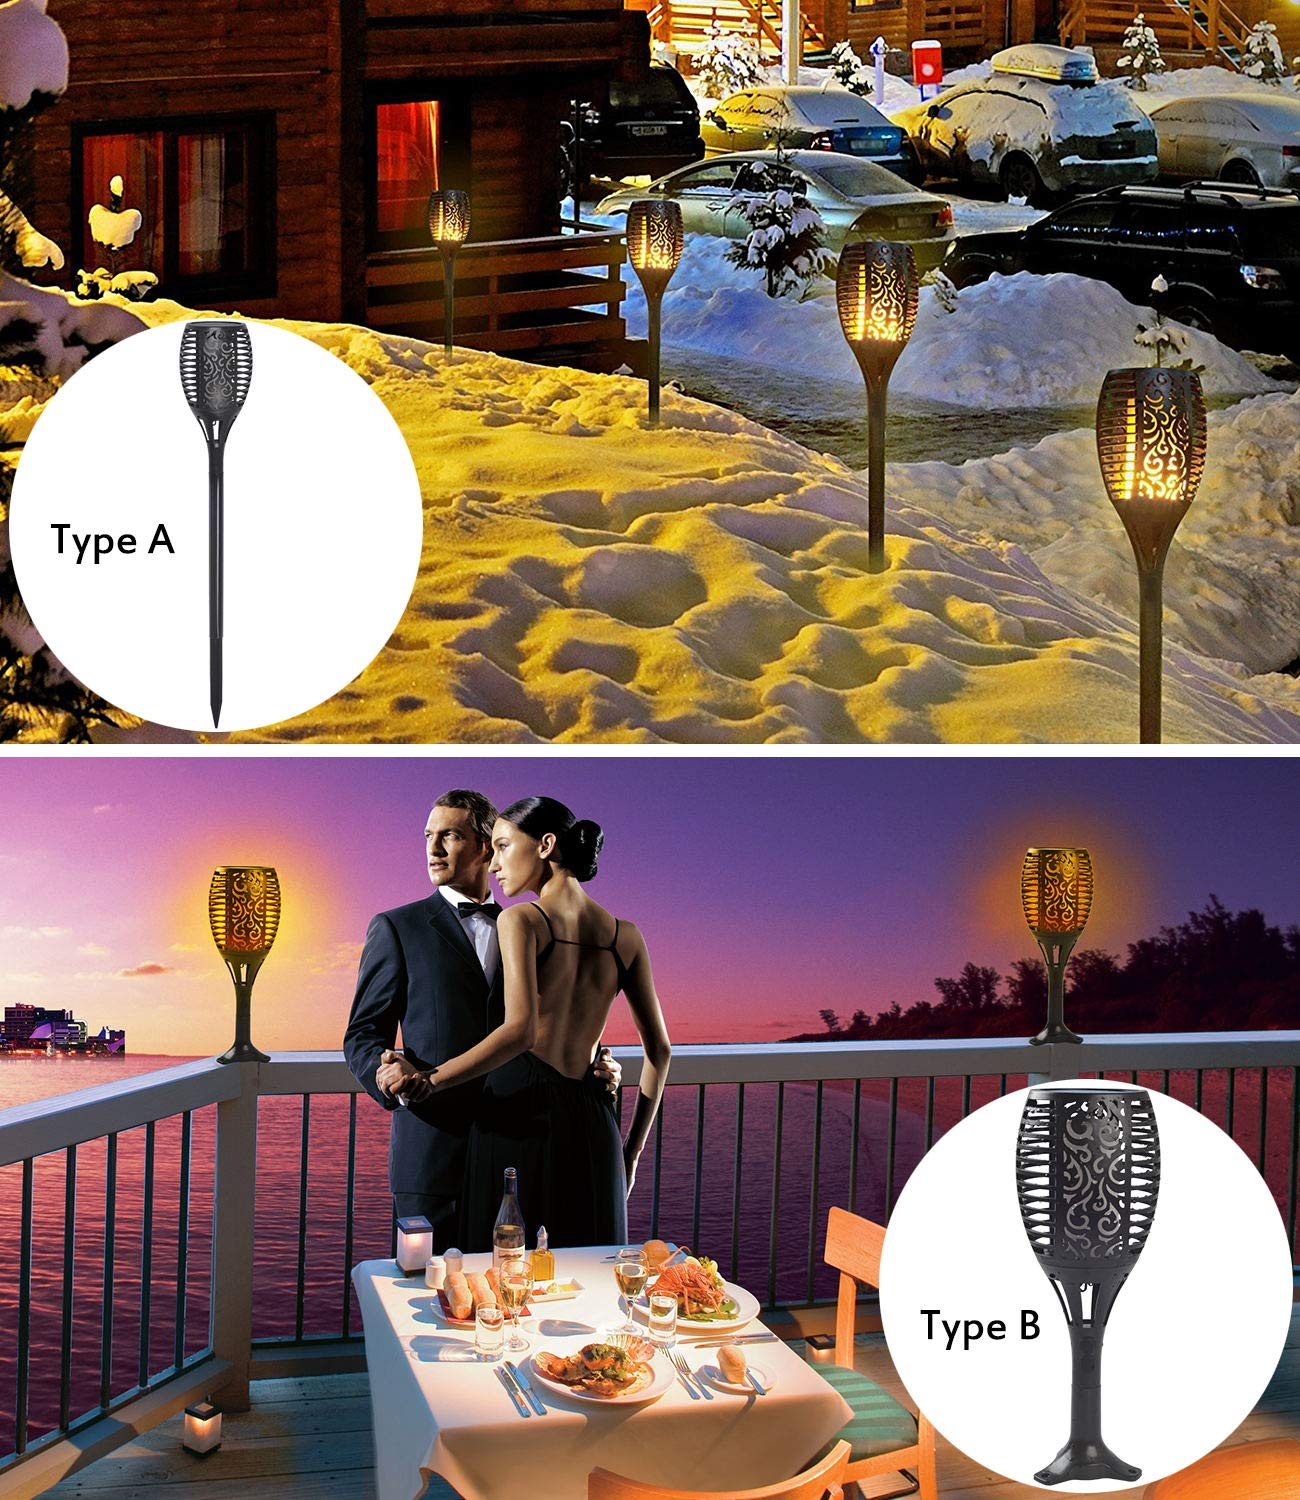 Waterproof Flickering Flame Solar Torches Dancing Flames Landscape USB Charging Decoration Lighting Dusk to Dawn Outdoor Security Path Light for Garden Patio Yard Driveway 4 Pack Marlrin M-00002 Solar Torch Lights